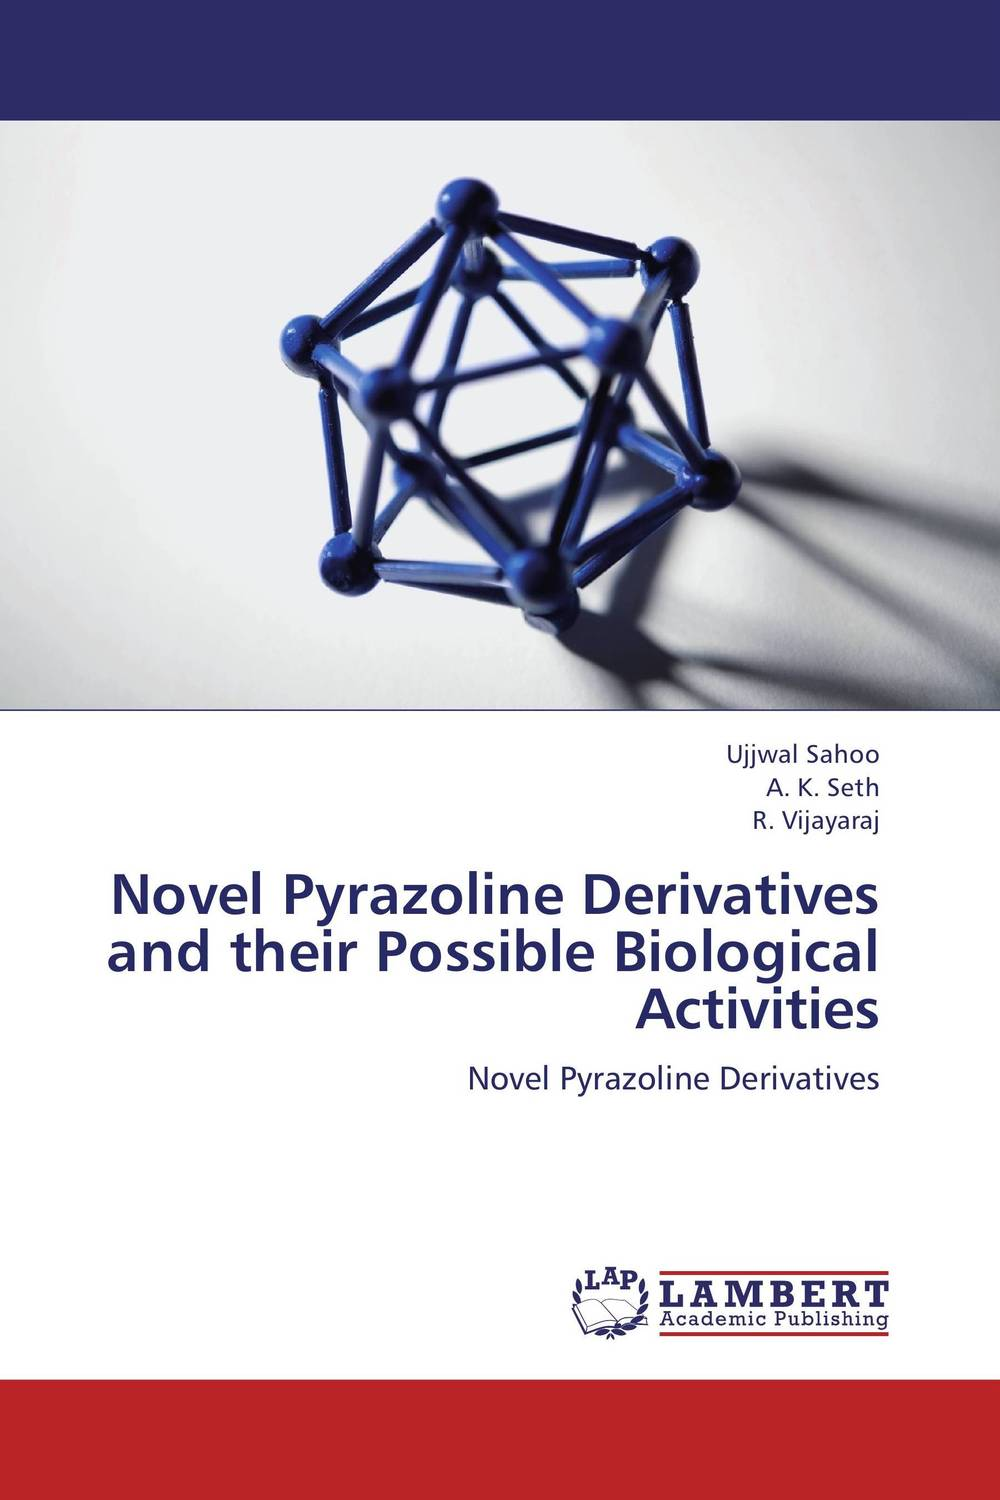 Novel Pyrazoline Derivatives and their Possible Biological Activities sandip p vyas novel s triazine derivatives